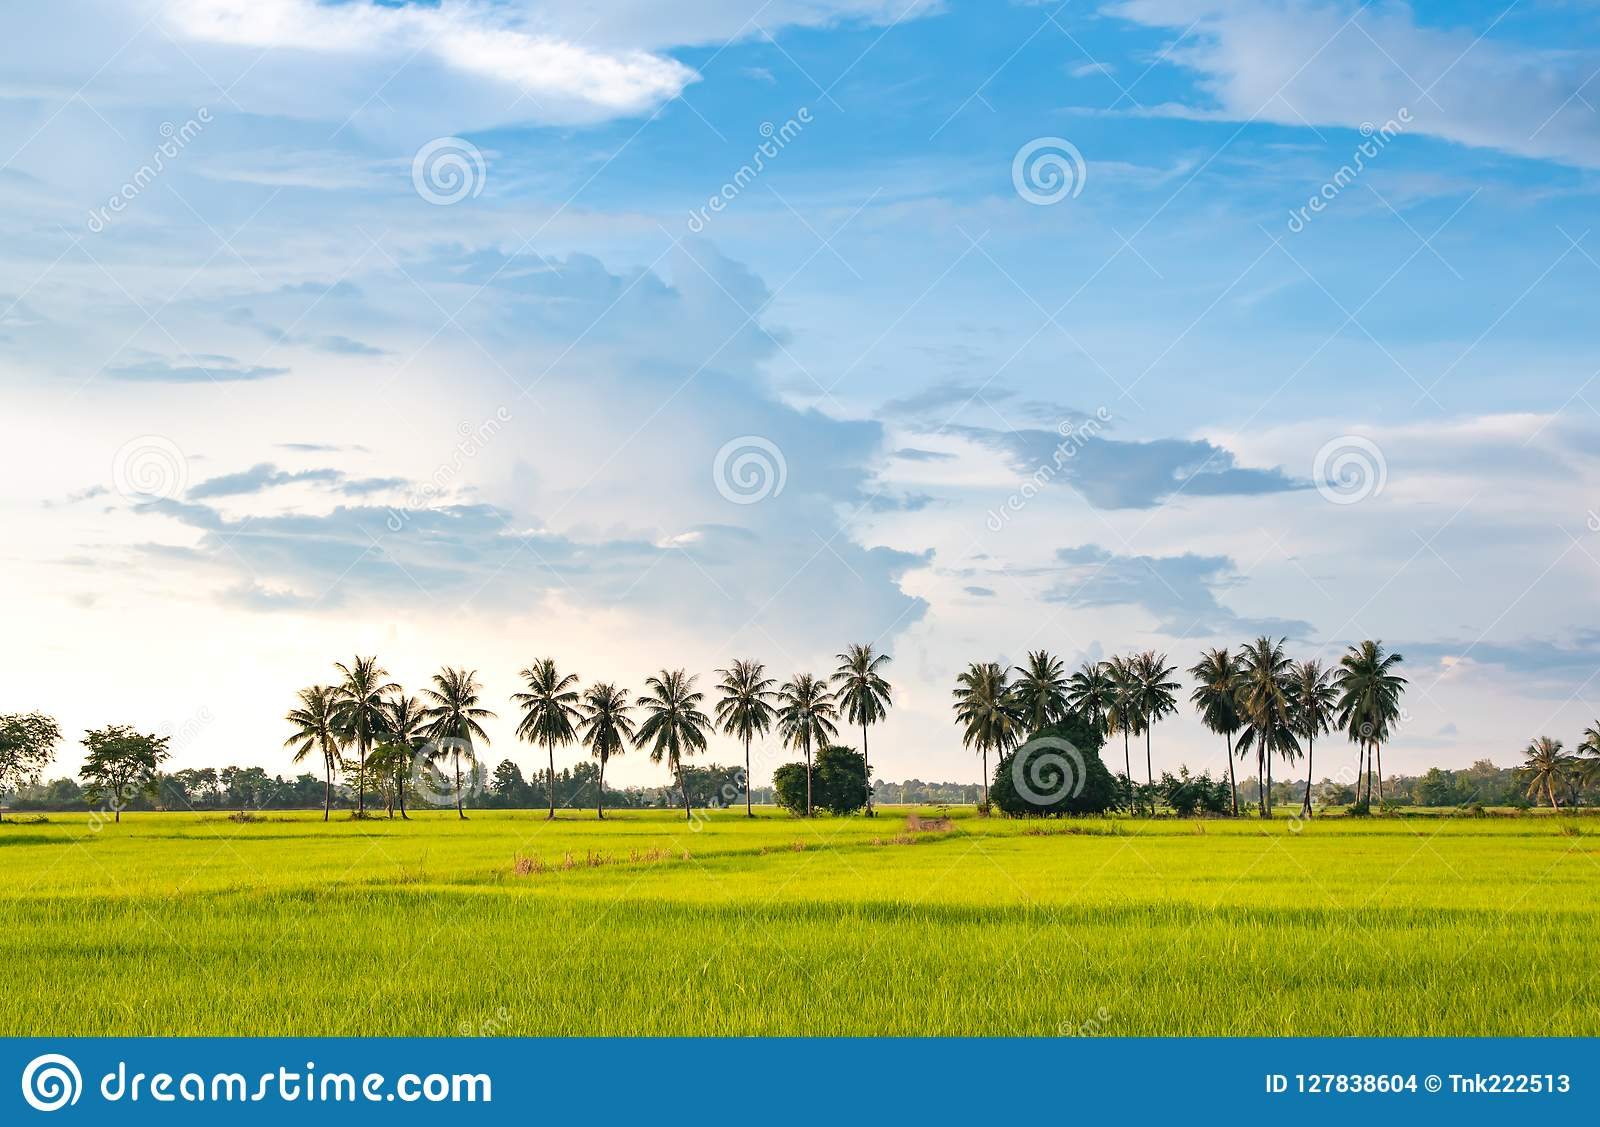 Nature landscape, coconuts tree growing up in the organic rice field and beautiful blue sky cloud background in countryside.